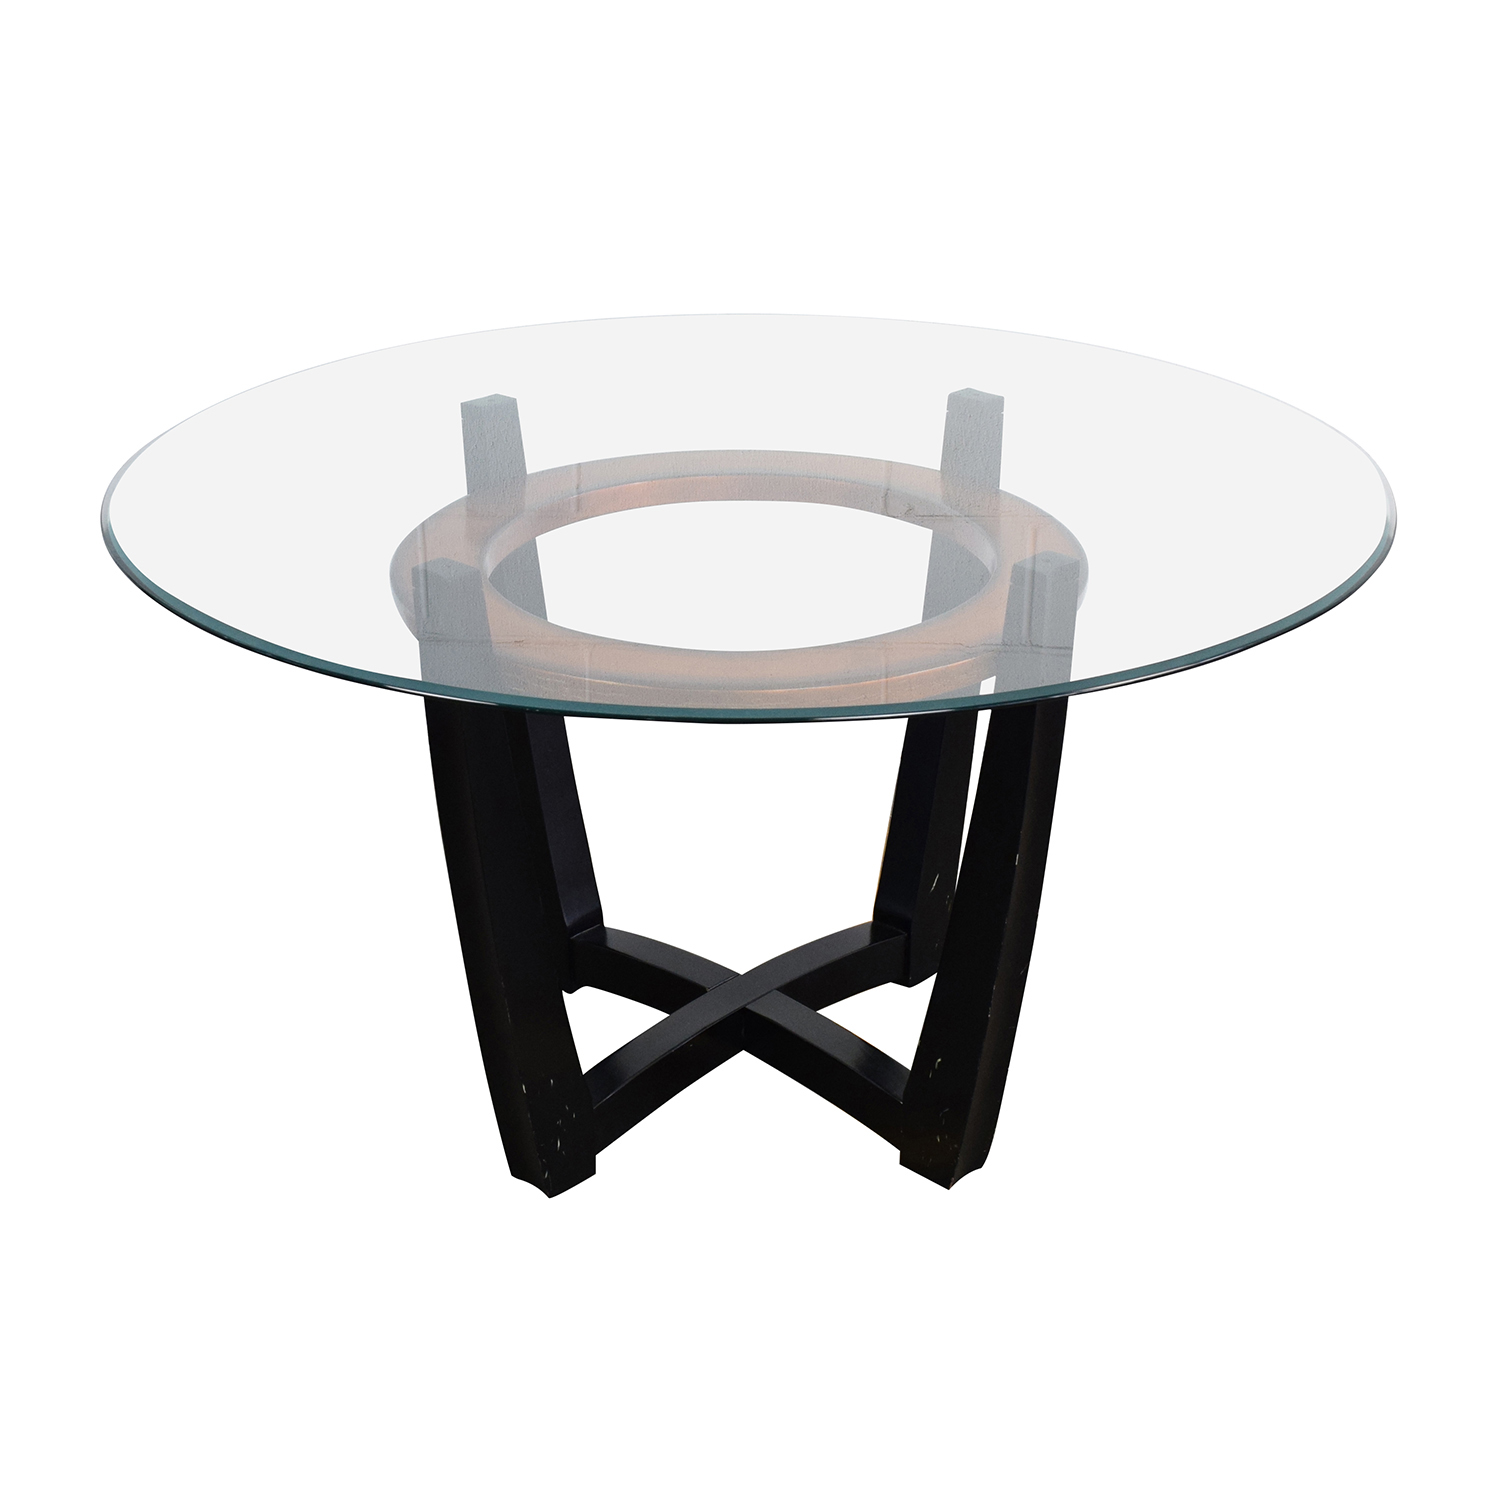 88 off macy 39 s macy 39 s elation round glass dining table for Dining room tables macys